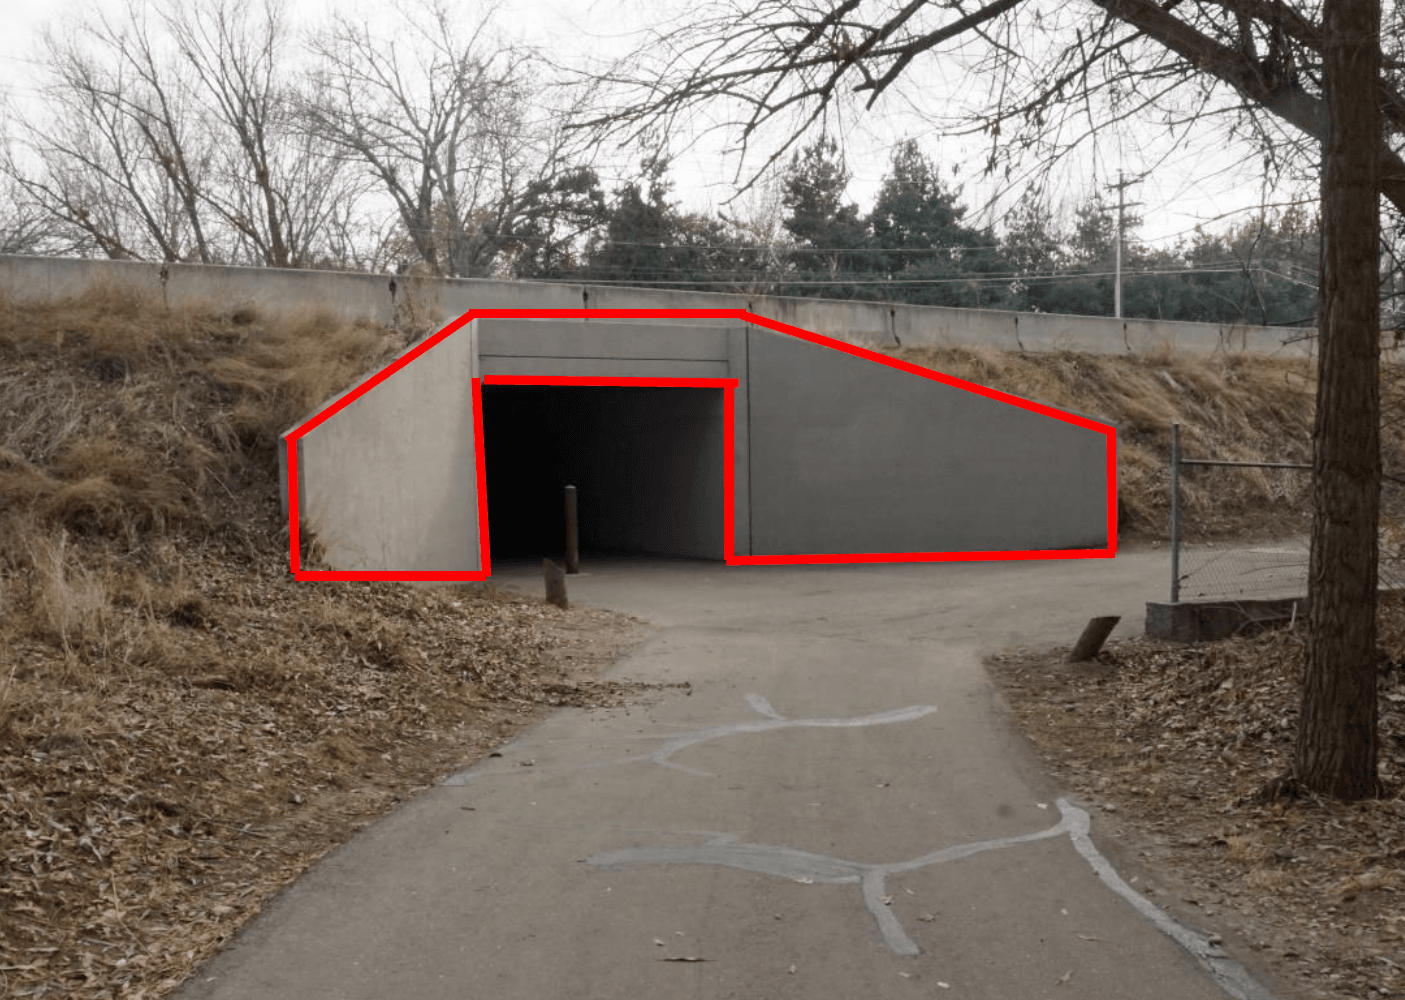 The west entrance to the greenbelt tunnel. The mural area is outlined in red.